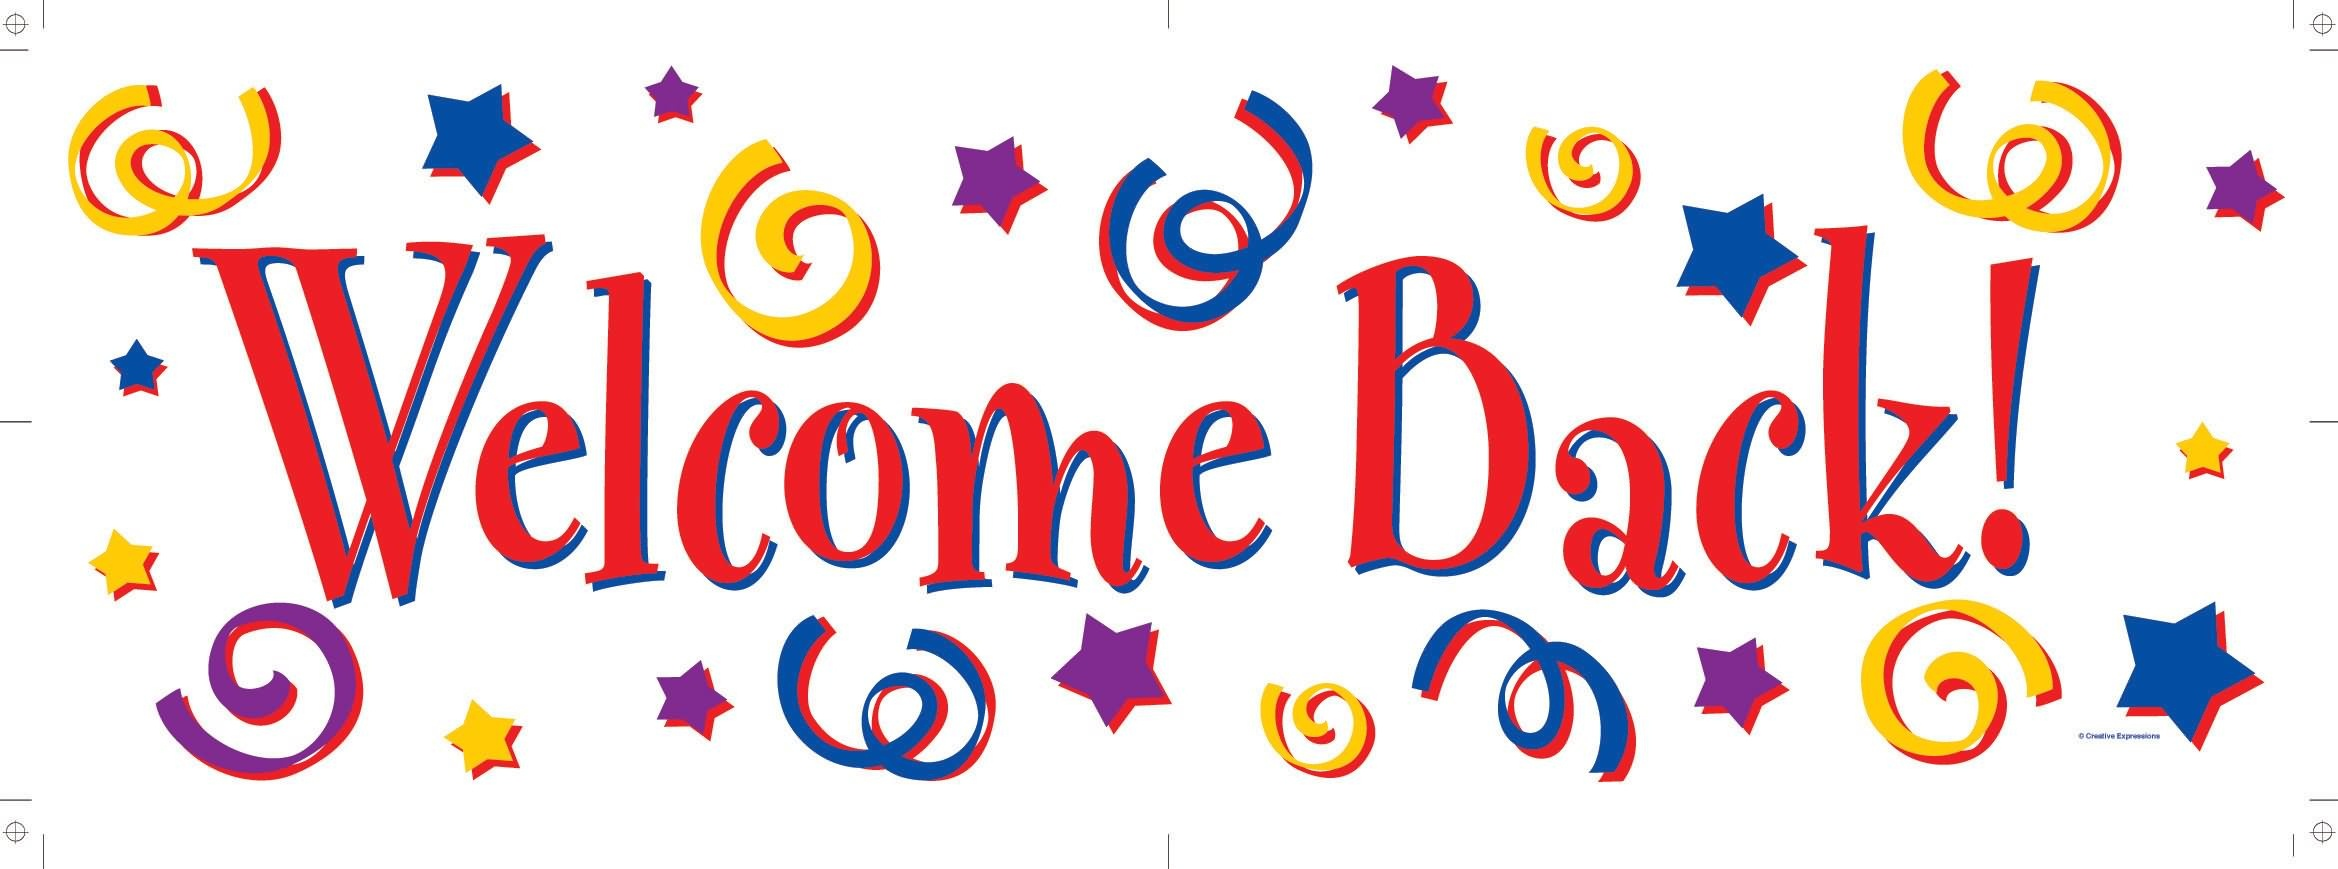 Welcome Back Sign Free | Free Download Best Welcome Back Sign Free - Free Printable Welcome Back Signs For Work